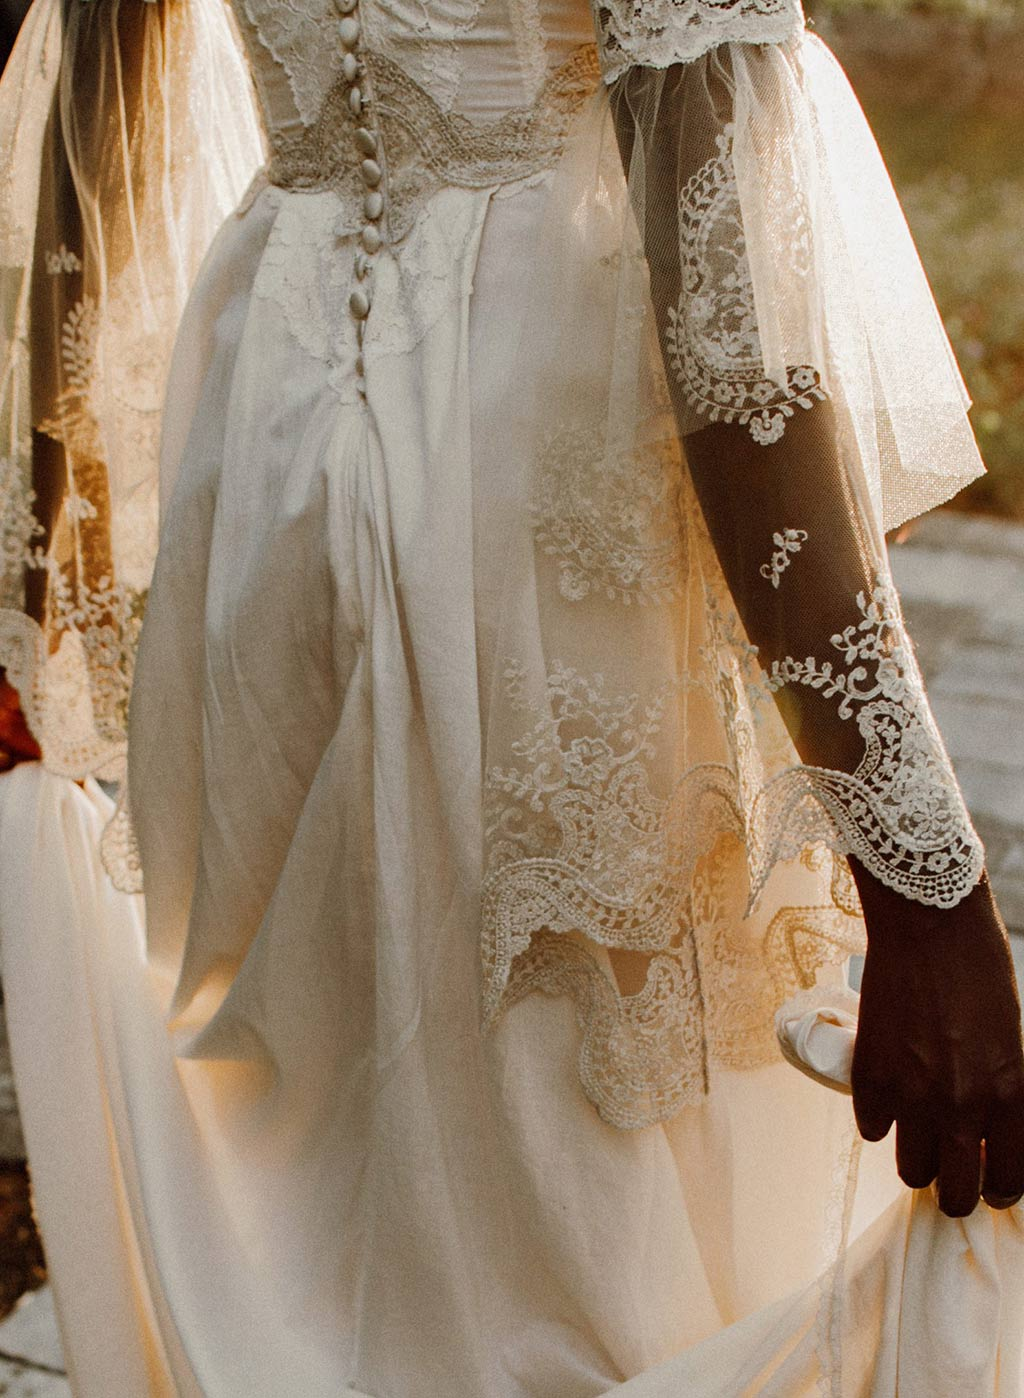 Marie Cotton Wedding Dress Sleeve and Back Detail